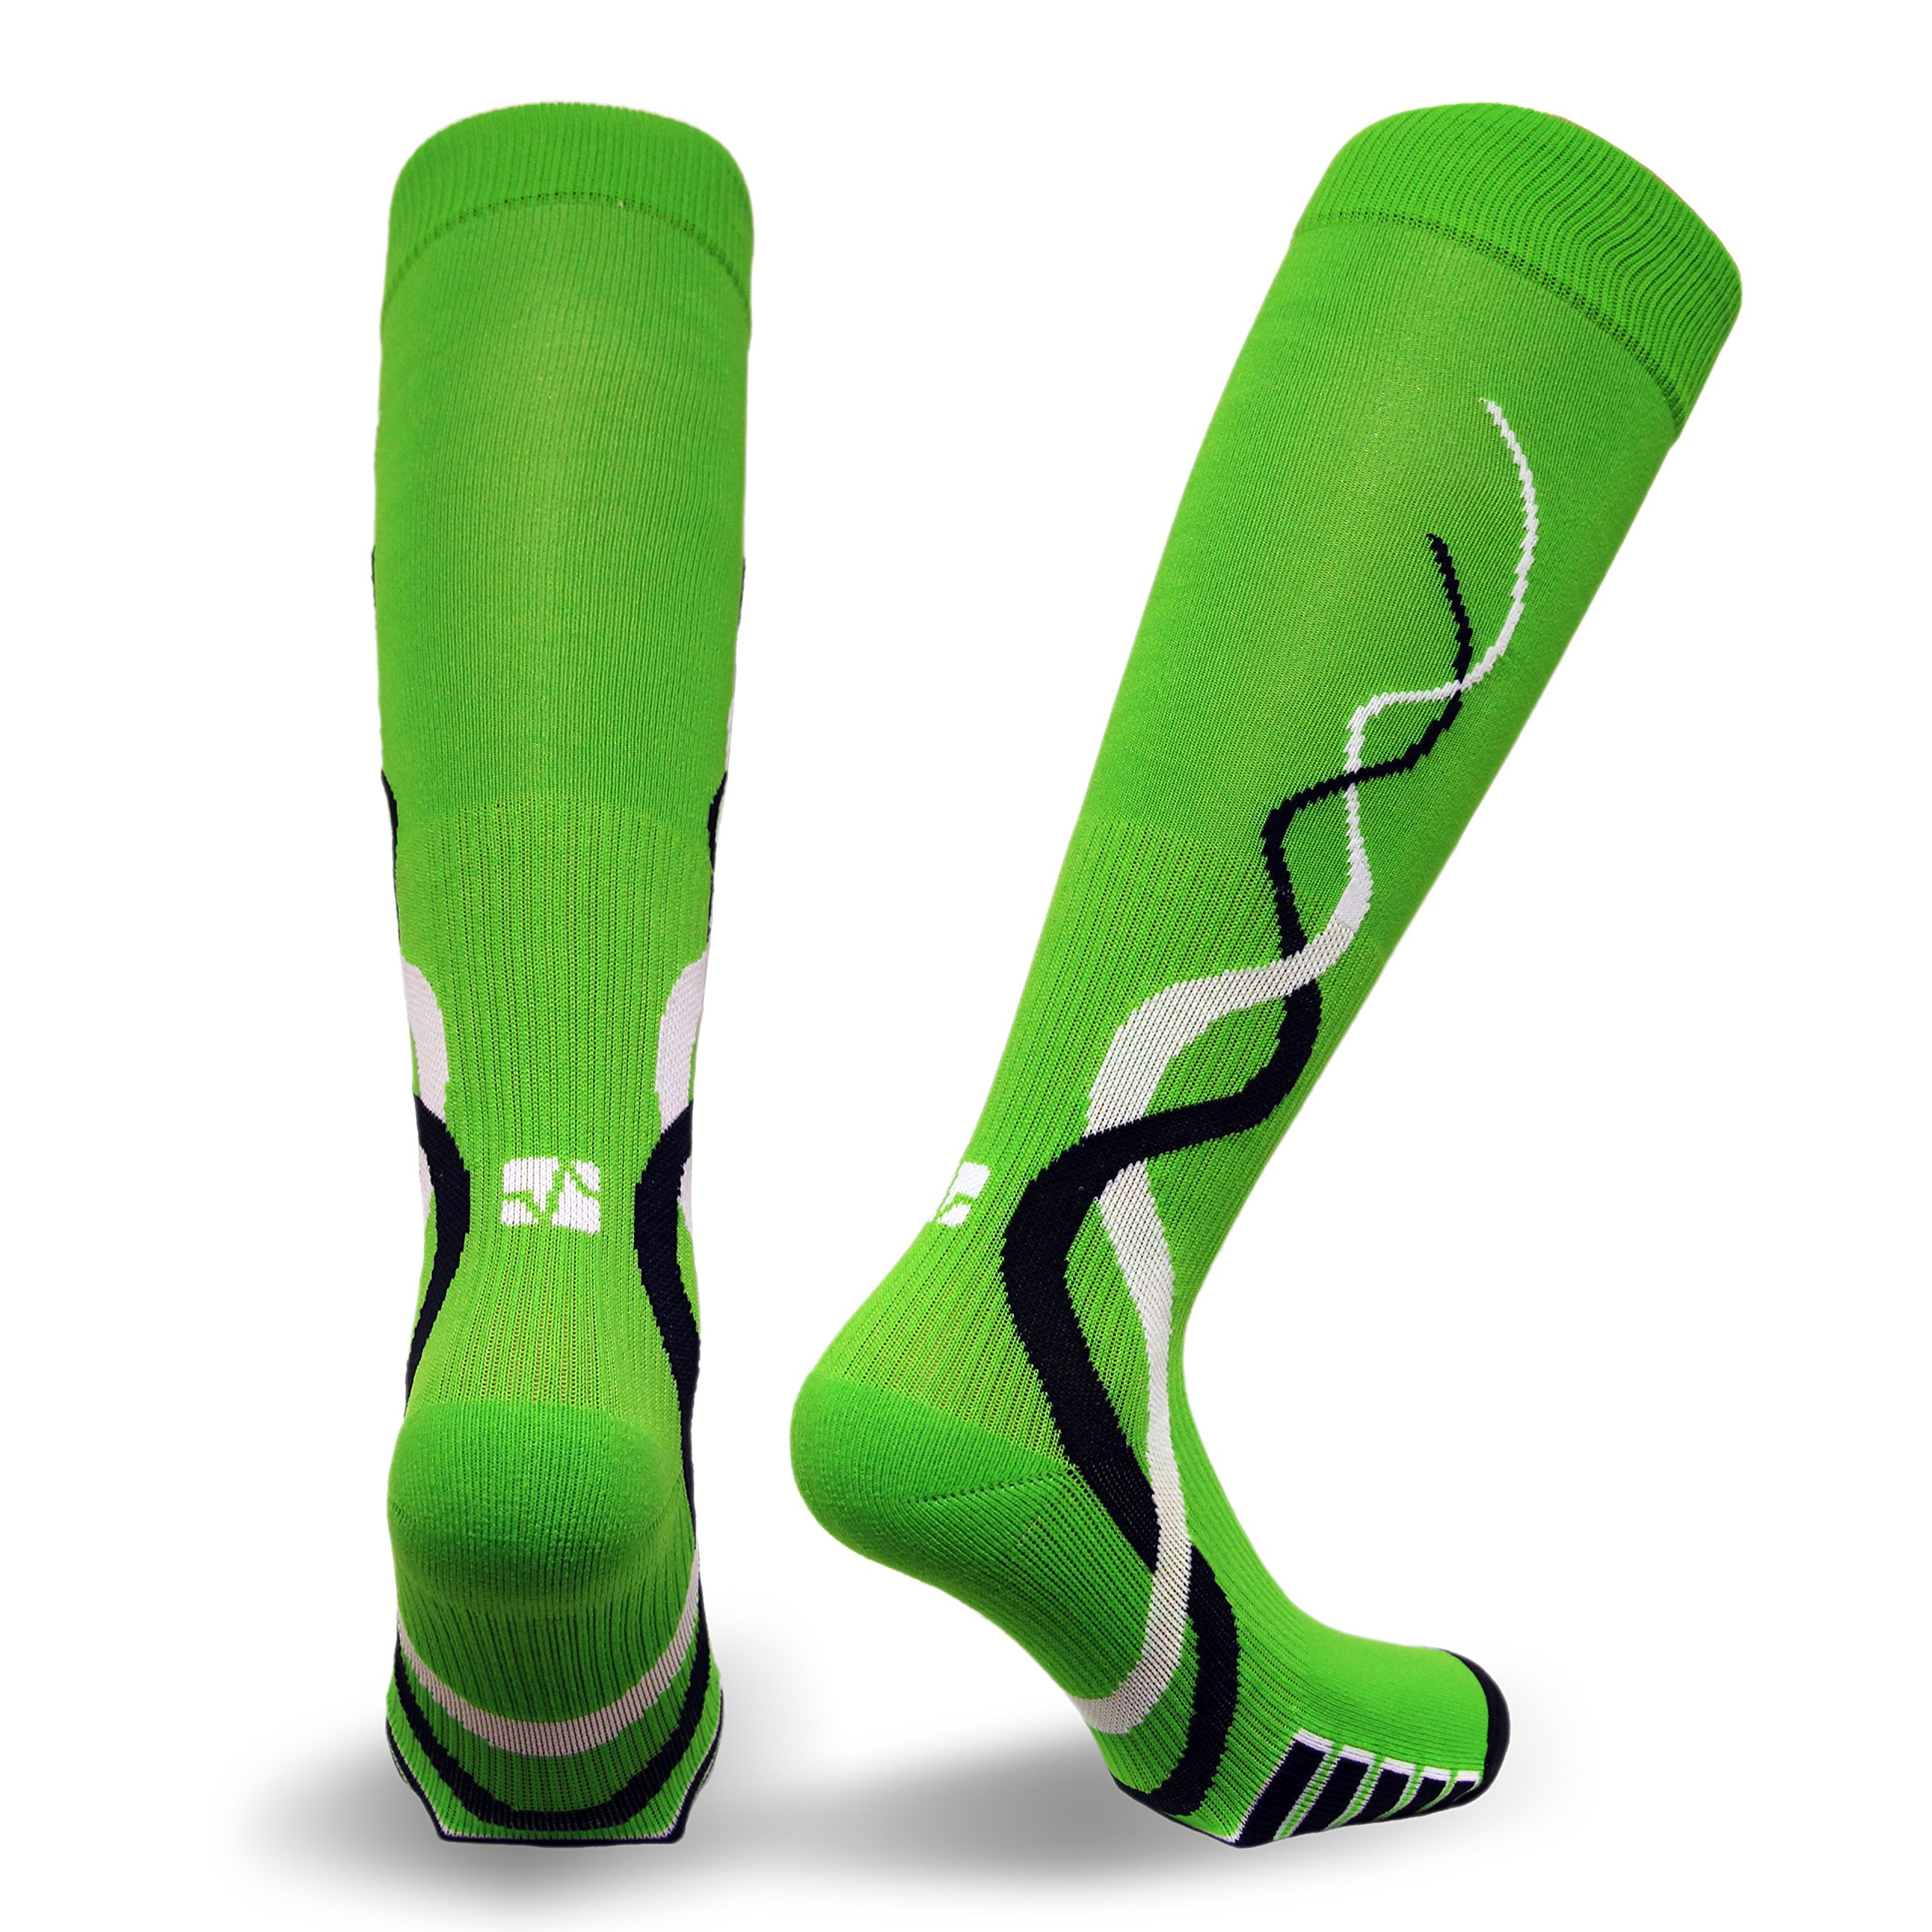 Vitalsox VTW0316 Race Day, Ladies Patented Graduated Compression Odor Resistant Running, Training, Recovery Socks (1 pair Women's), Medium, Green